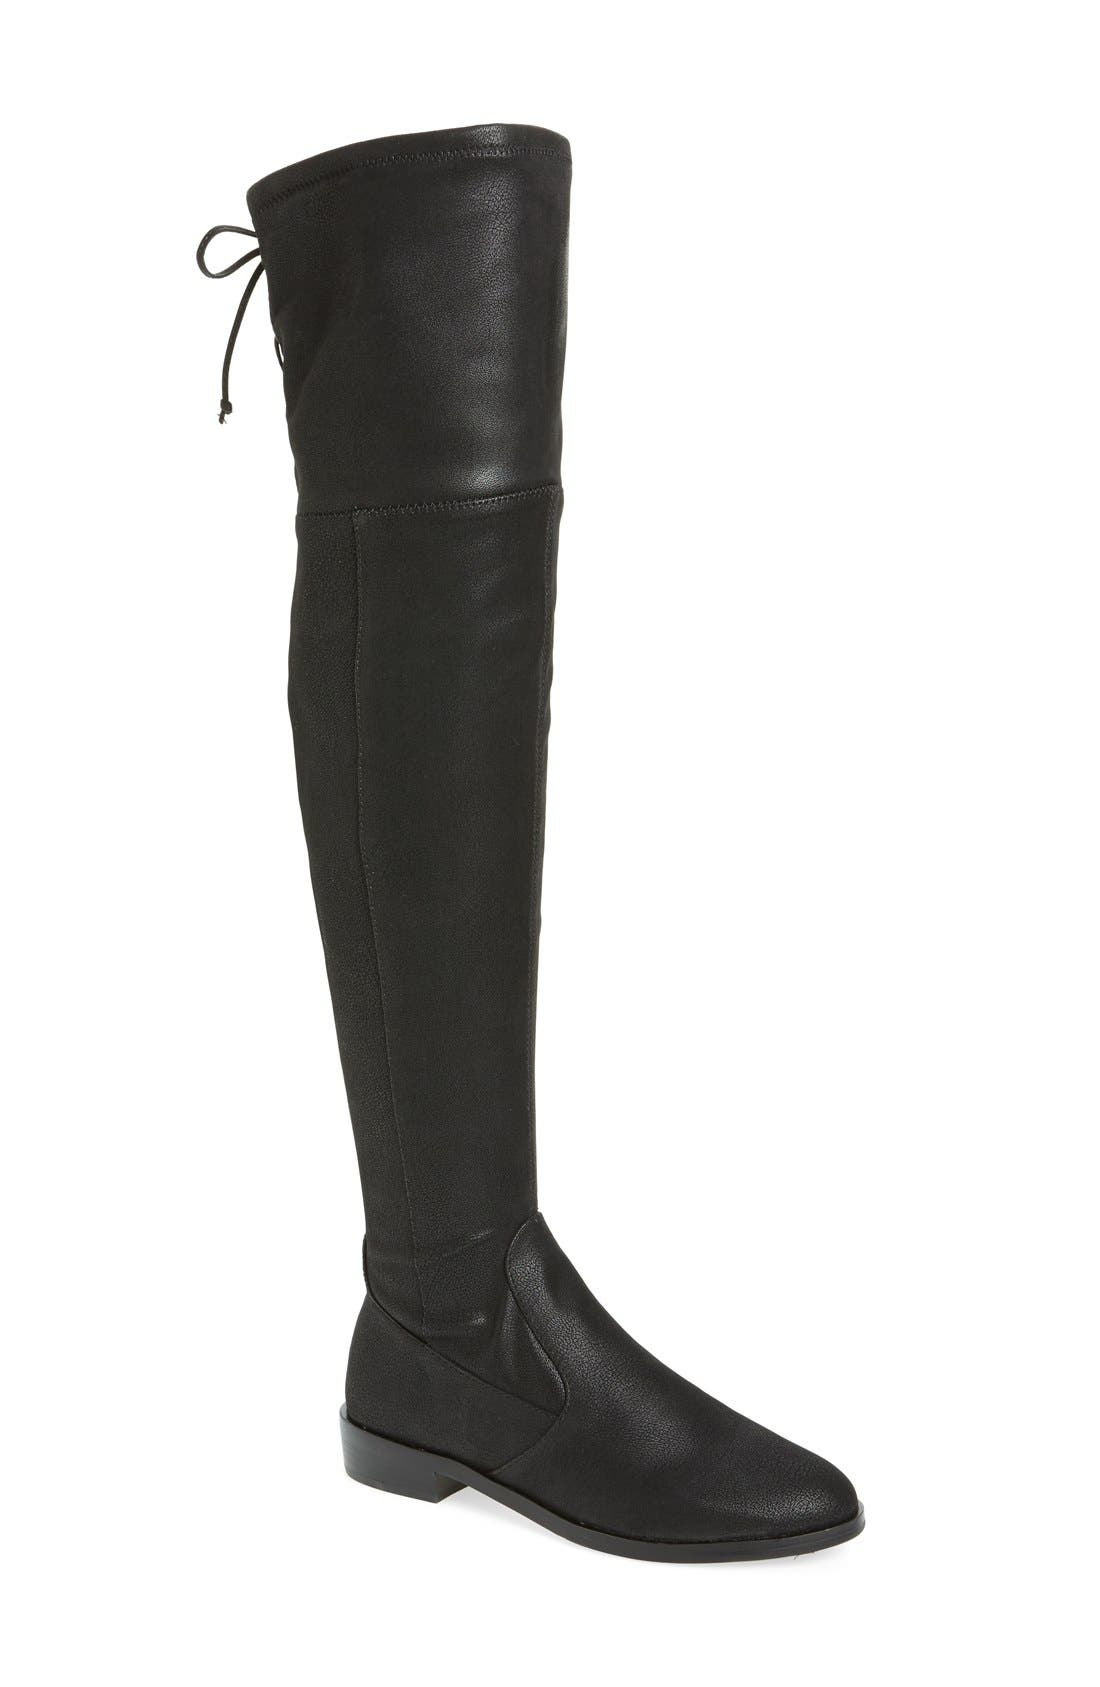 Alternate Image 1 Selected - Vince Camuto Crisintha Over the Knee Boot (Women)